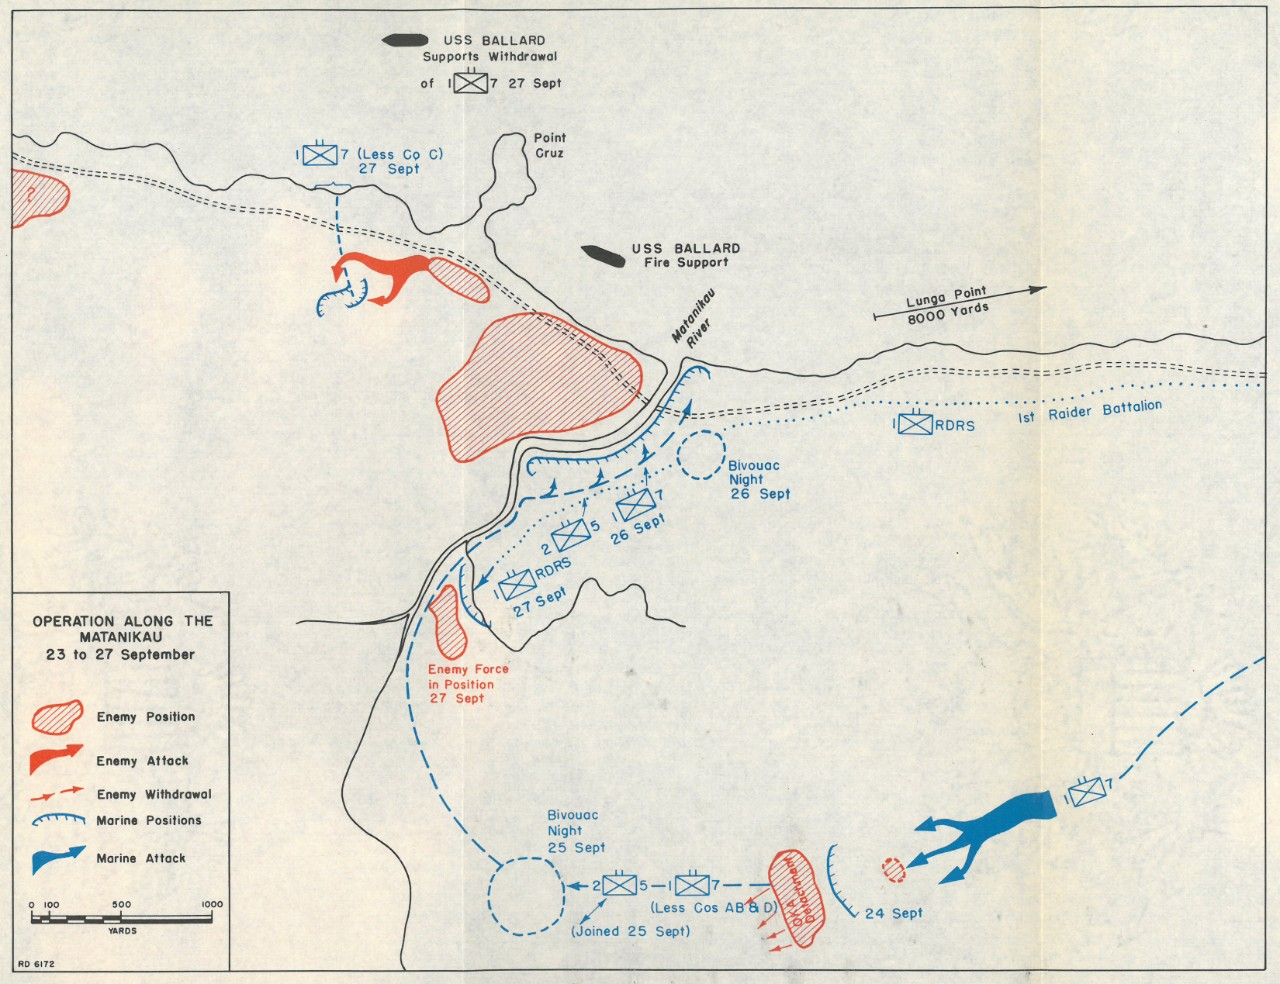 Map 11: Operation Along the Matanikau, 23 to 27 September.